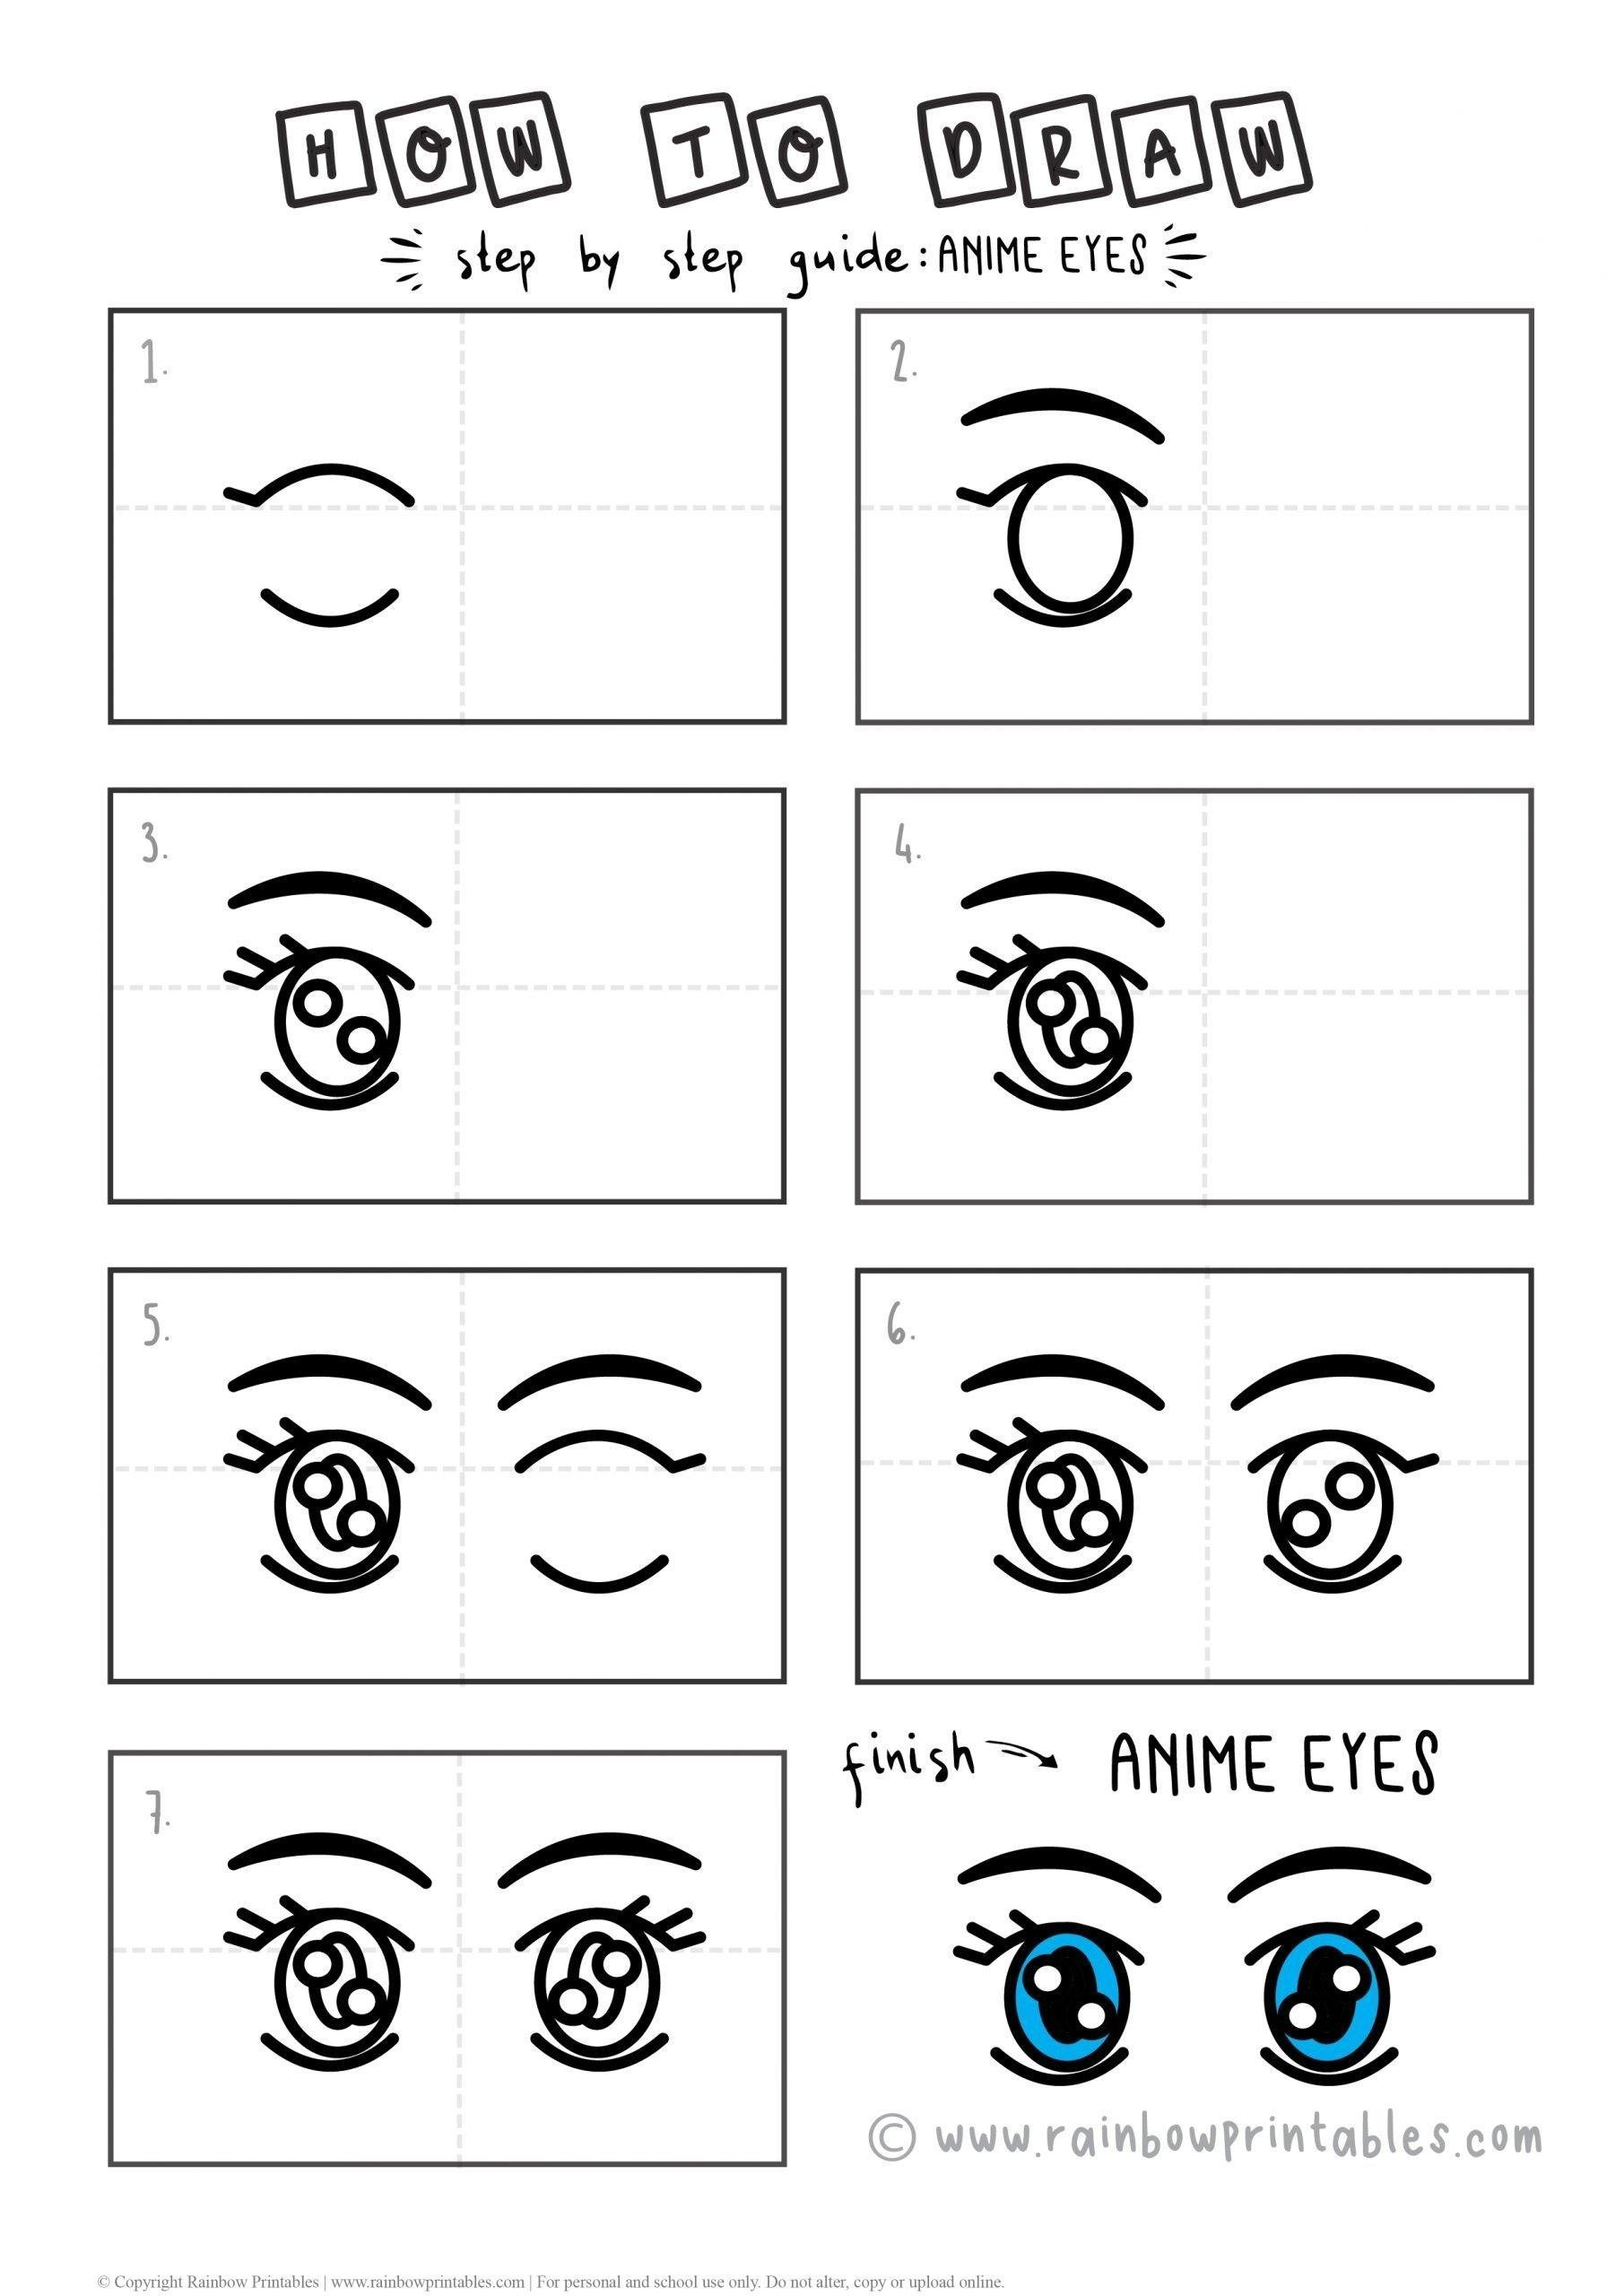 HOW TO DRAW ANIME EYES FOR KIDS - ART PROJECT STEP BY STEP EASY PRINTABLE ACTIVITY FREE DRAWING